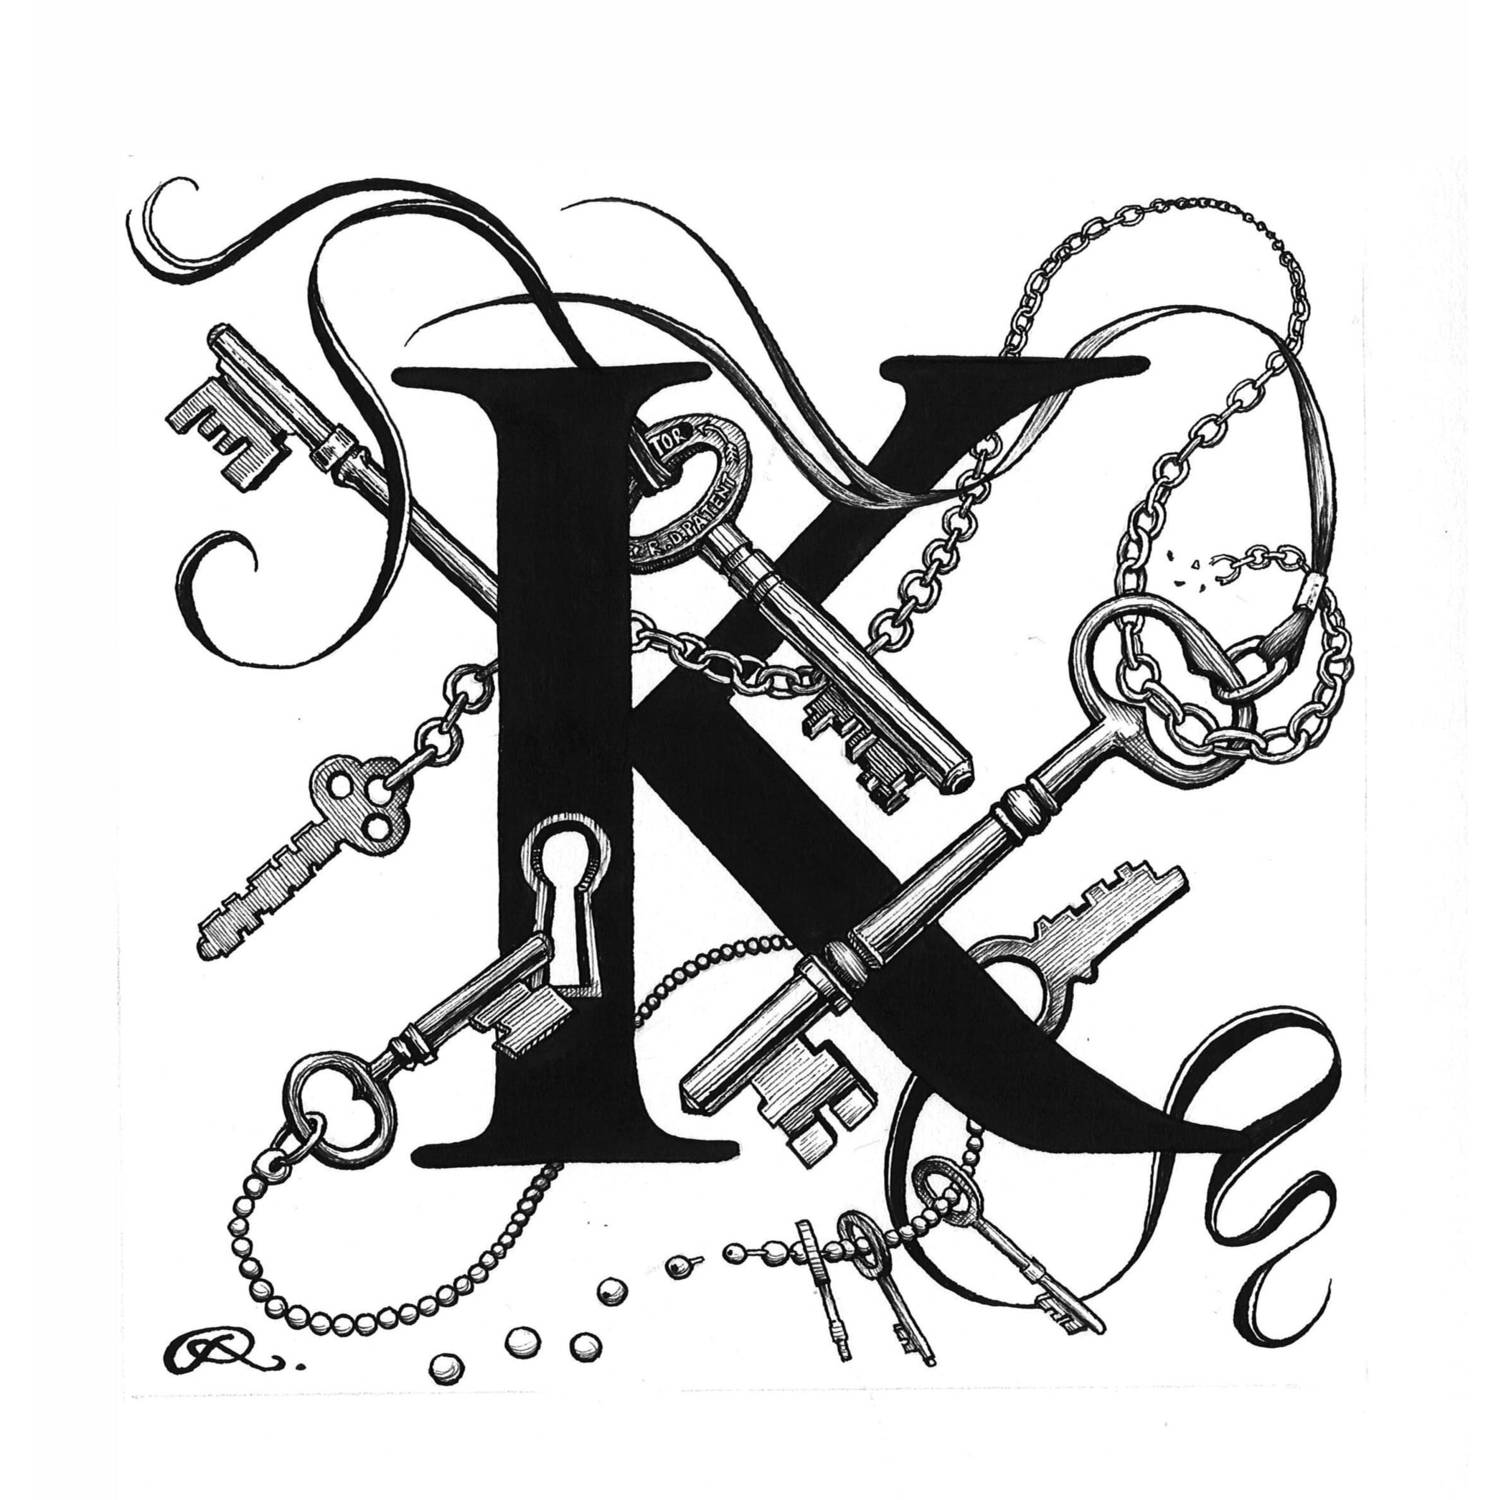 Keyhole Chaos Intricate Ink-0